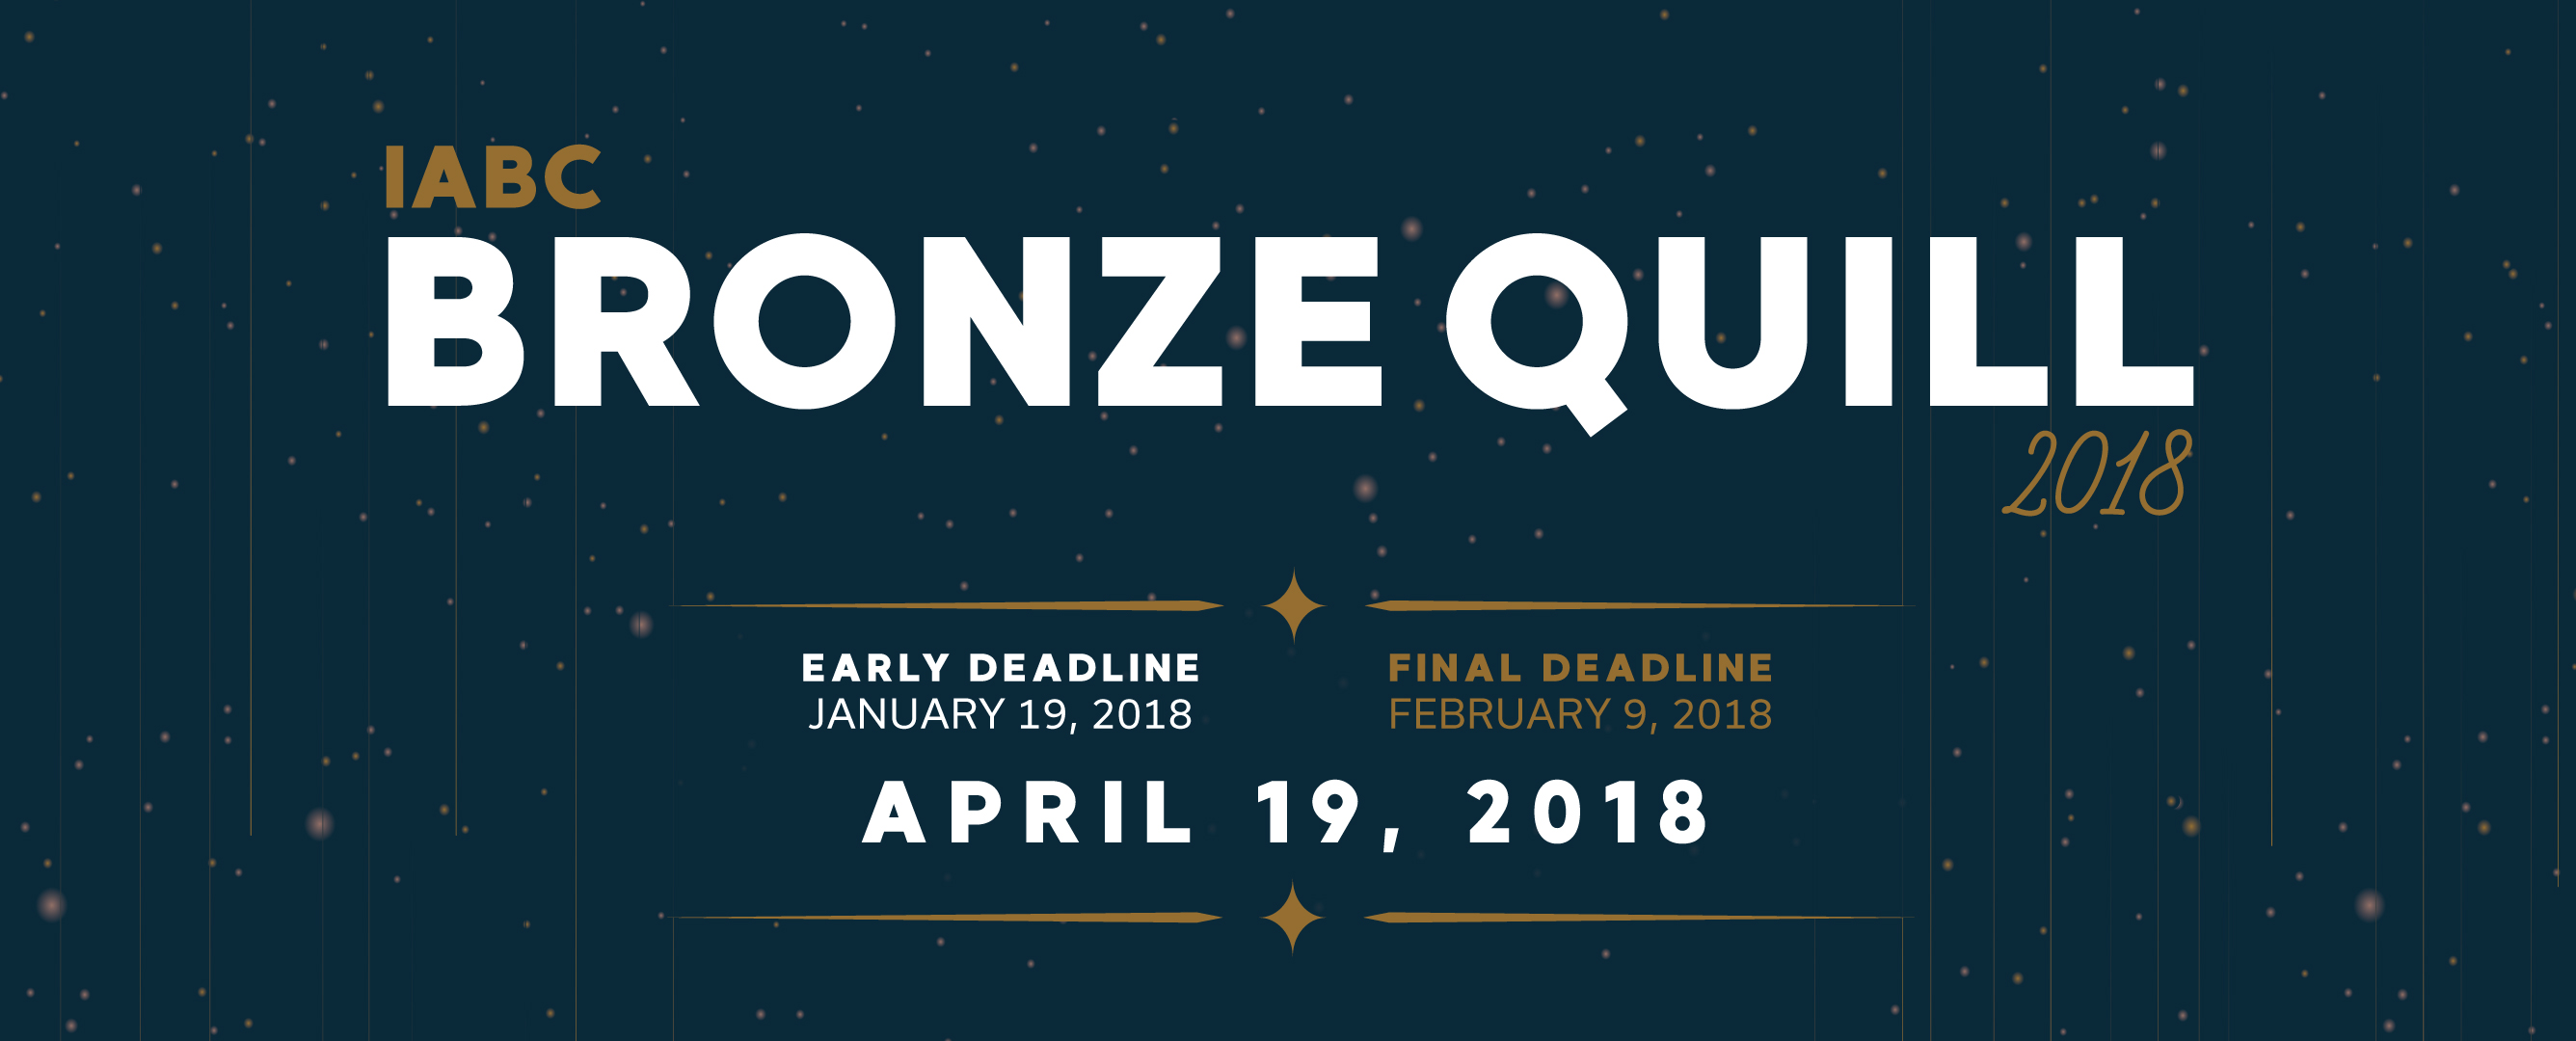 Bronze Quill 2018 – Call for Entries